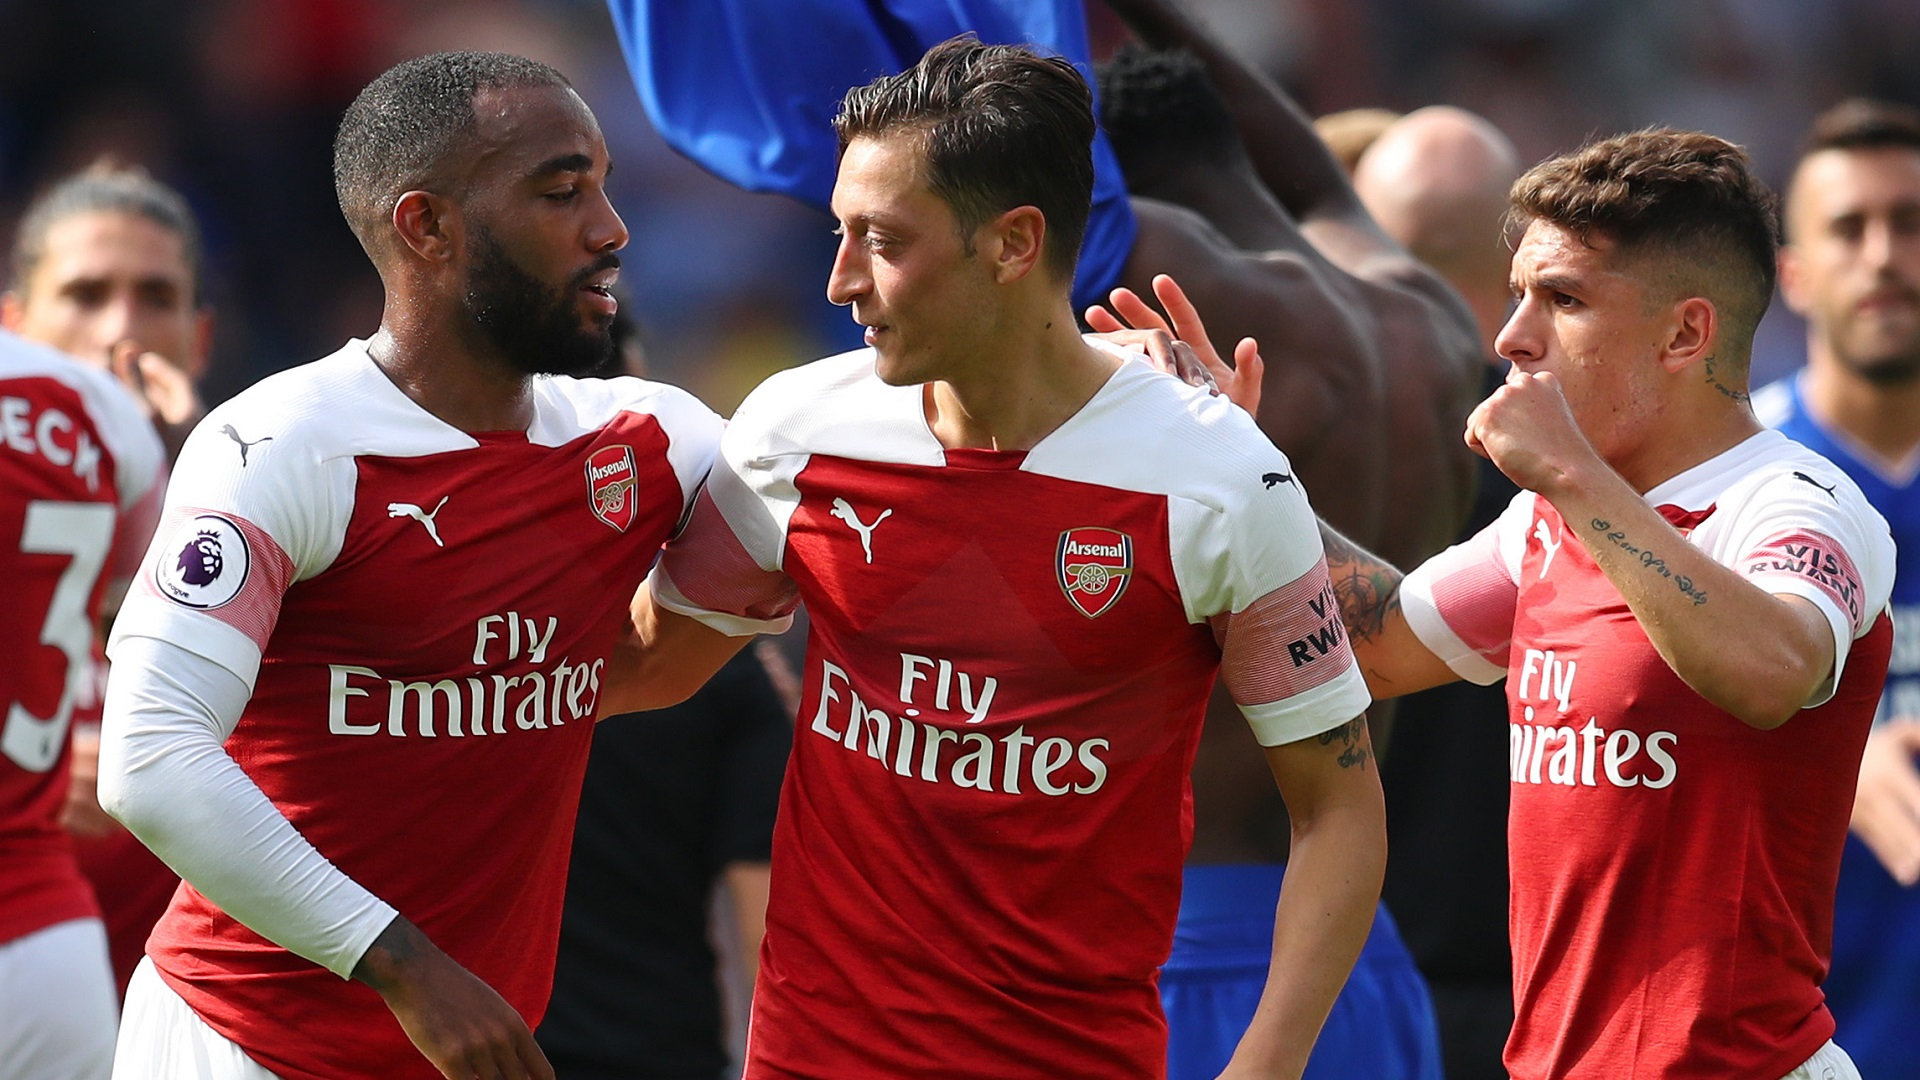 Cardiff City vs Arsenal, Premier League 2018-19